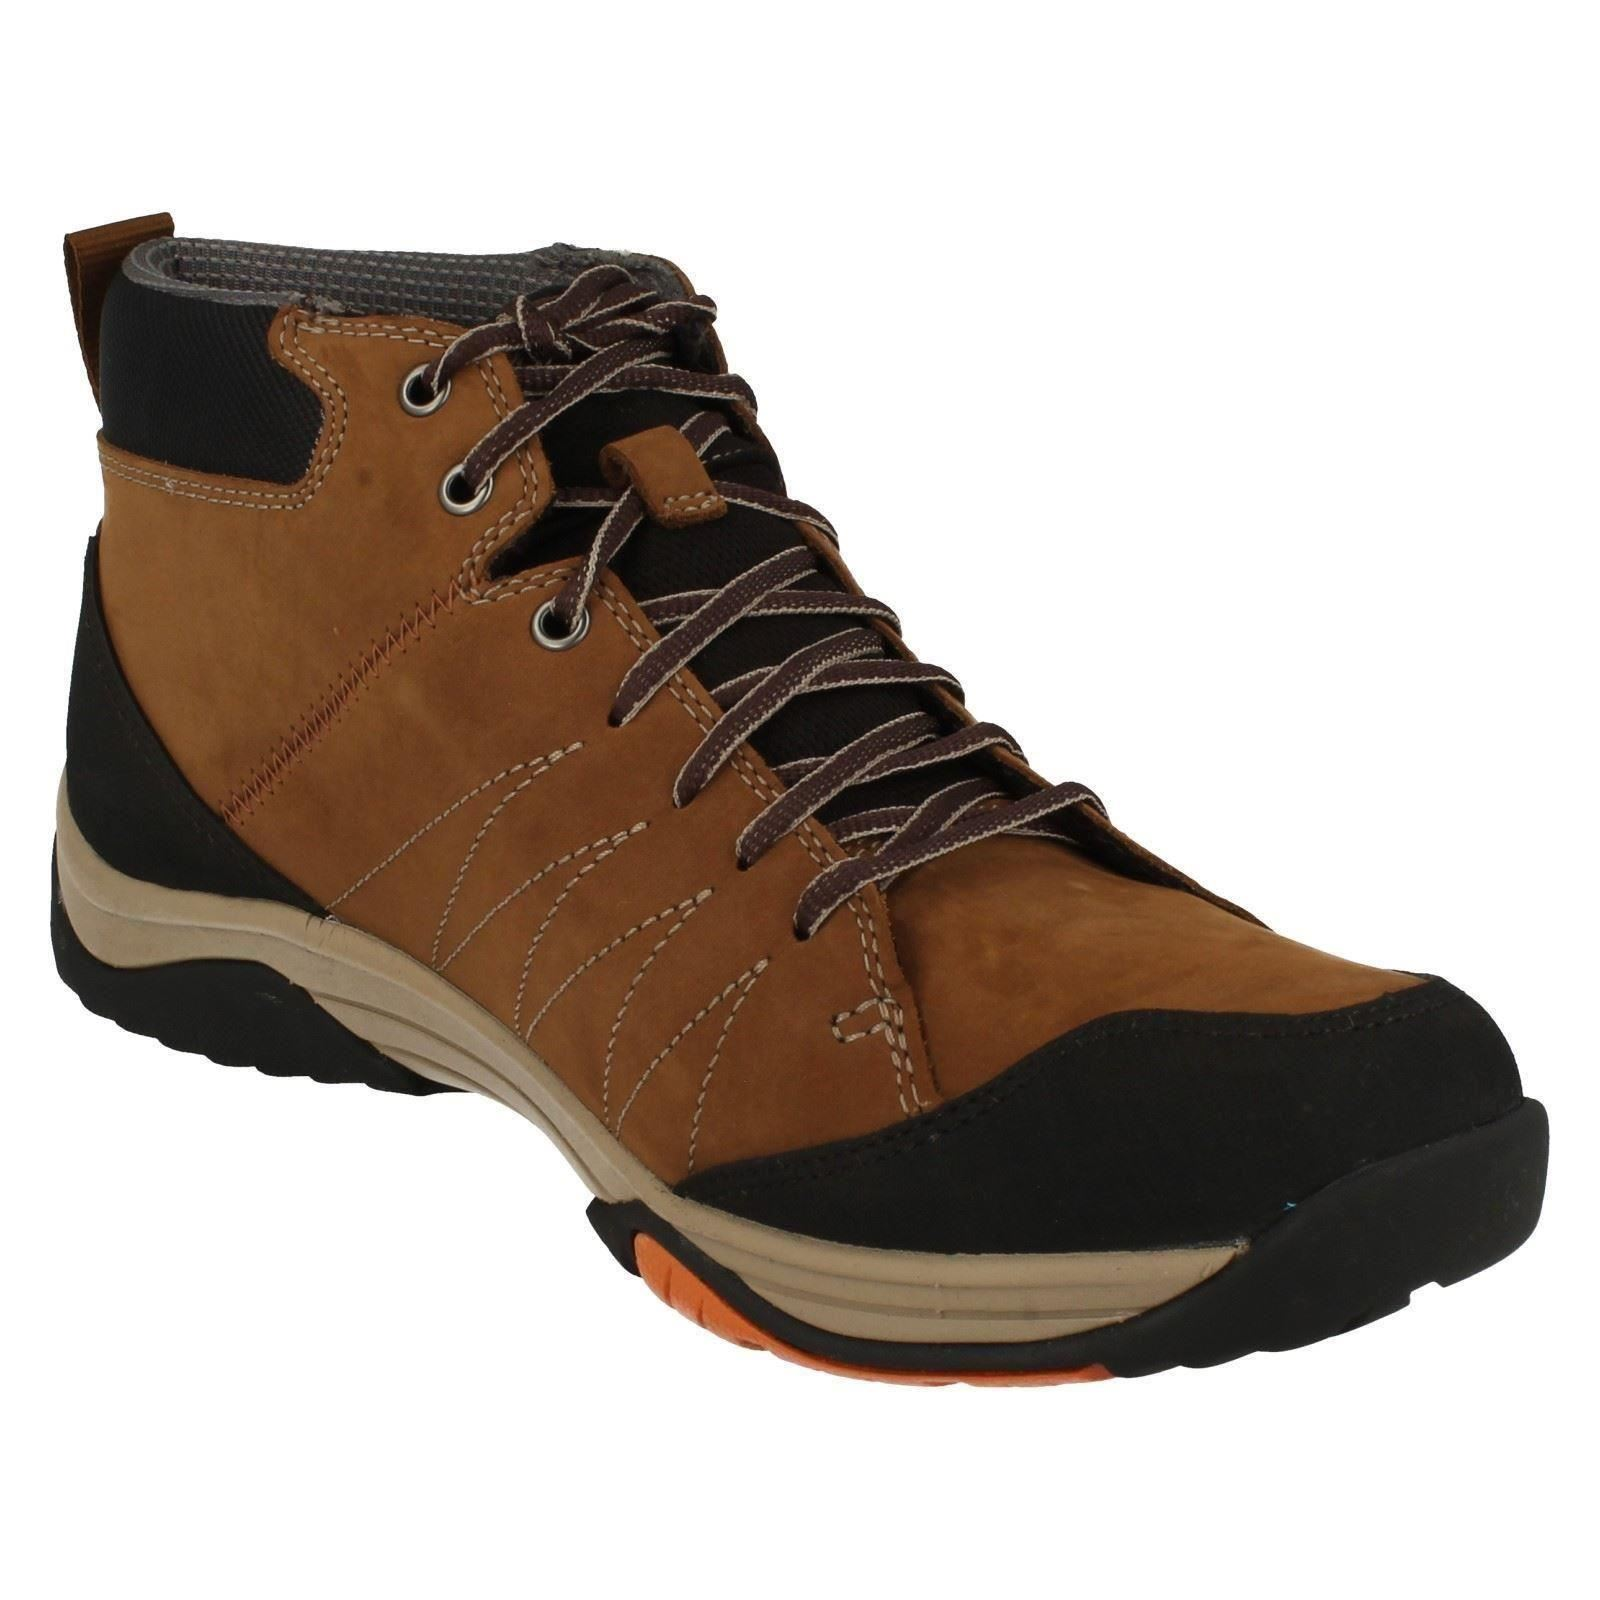 Mens Clarks Lightweight Lightweight Lightweight Ankle Boots Baystoneup GTX 216cf0